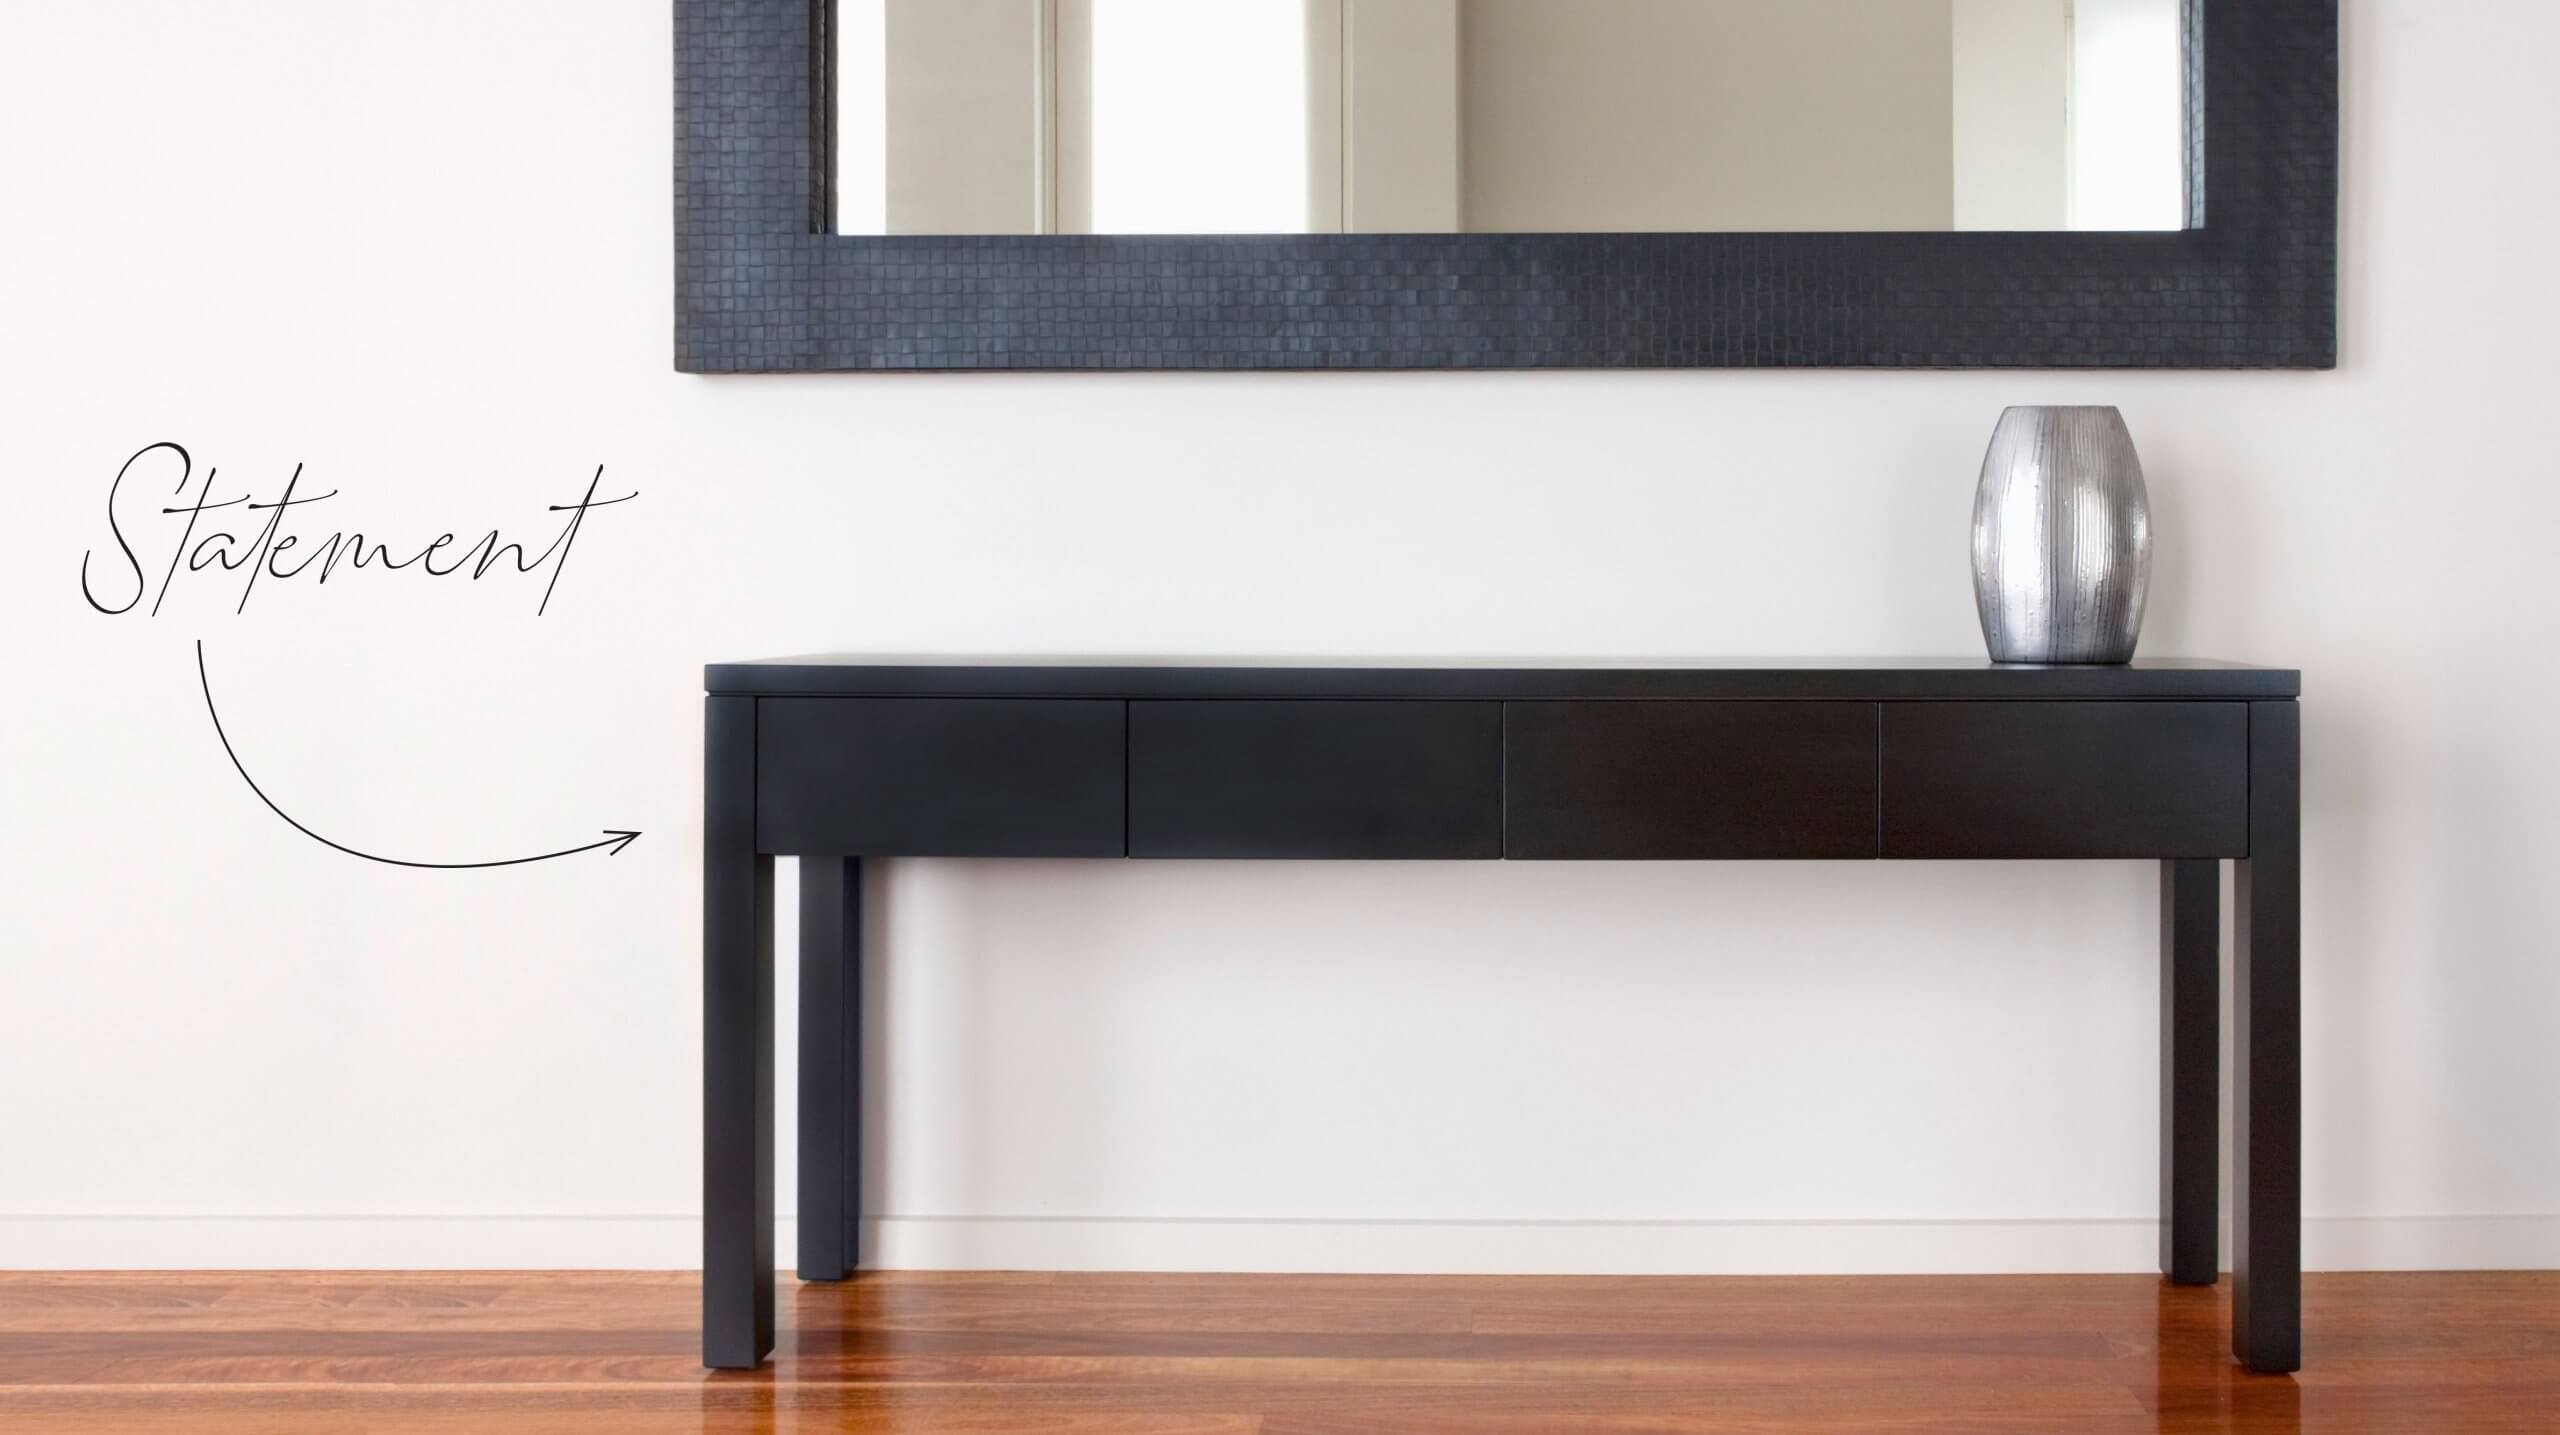 statement hallway table in black finish with drawers and mirror decoration